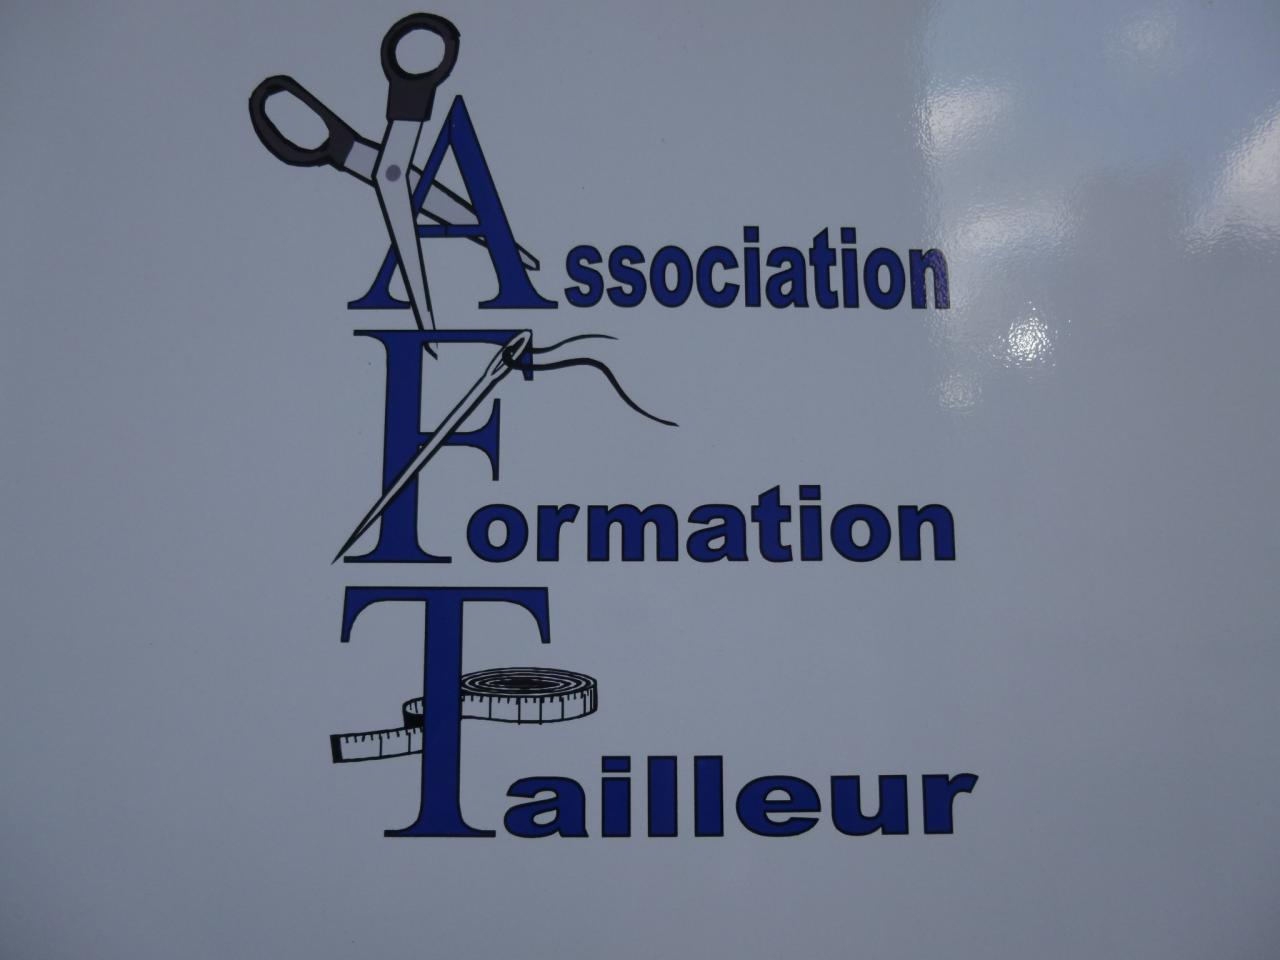 association formation tailleur